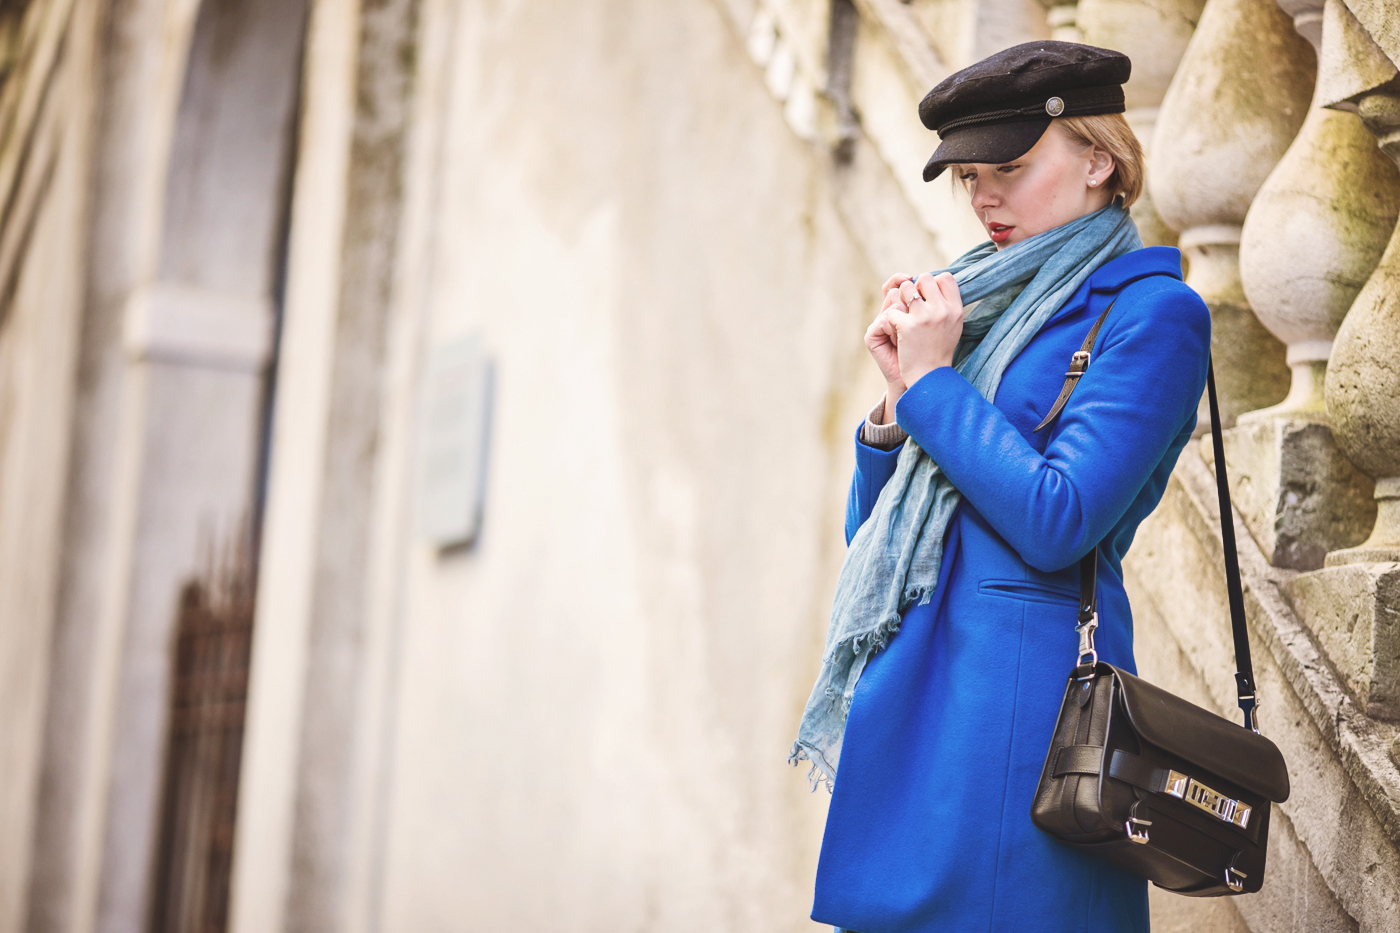 darya kamalova thecablook russian italian fashion bogger street style trend hm paris collection hat asos cobalt blue coat dr denim jeans ps11 proenza schouler bag bergamo cita alta centro storico italia italy-19 copy